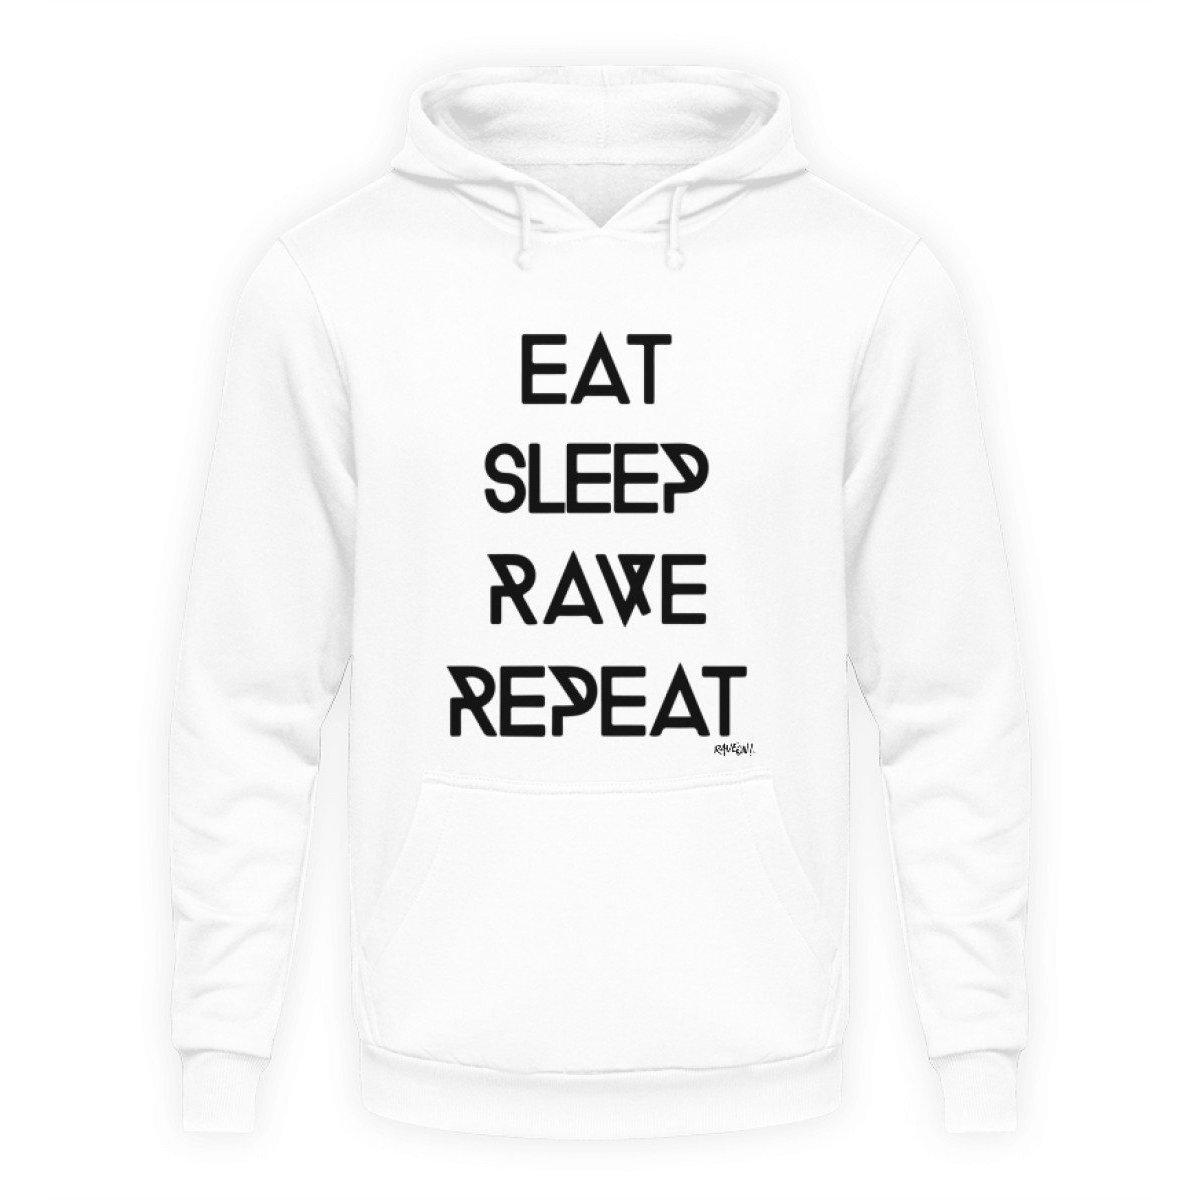 Eat Sleep Rave Repeat - Rave On!® - Unisex Kapuzenpullover Hoodie Unisex Hoodie Arctic White / L - Rave On!® der Club & Techno Szene Shop für Coole Junge Mode Streetwear Style & Fashion Outfits + Sexy Festival 420 Stuff